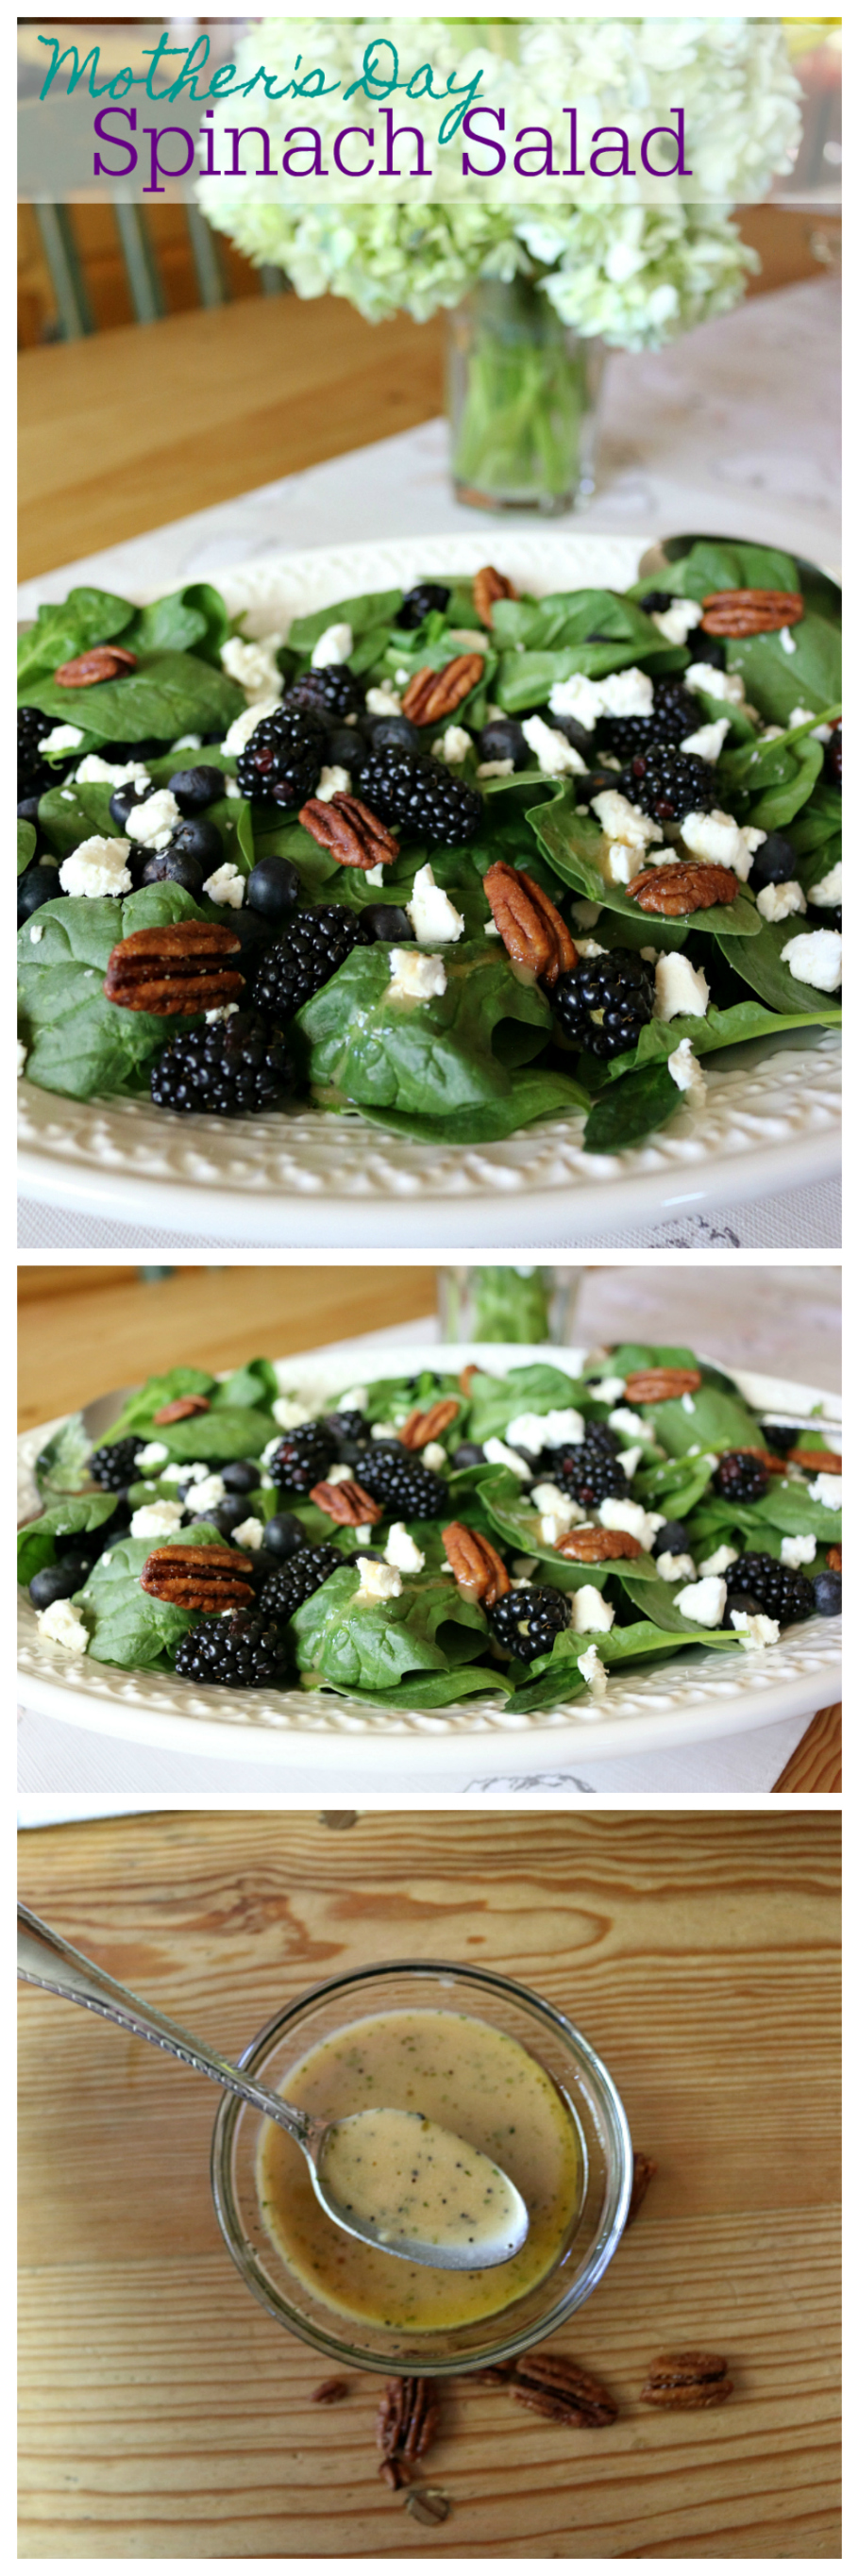 Spinach Salad with Poppy Seed Dressing CeceliasGoodStuff.com  Plus 5 amazing spinach salads Mom will LOVE!